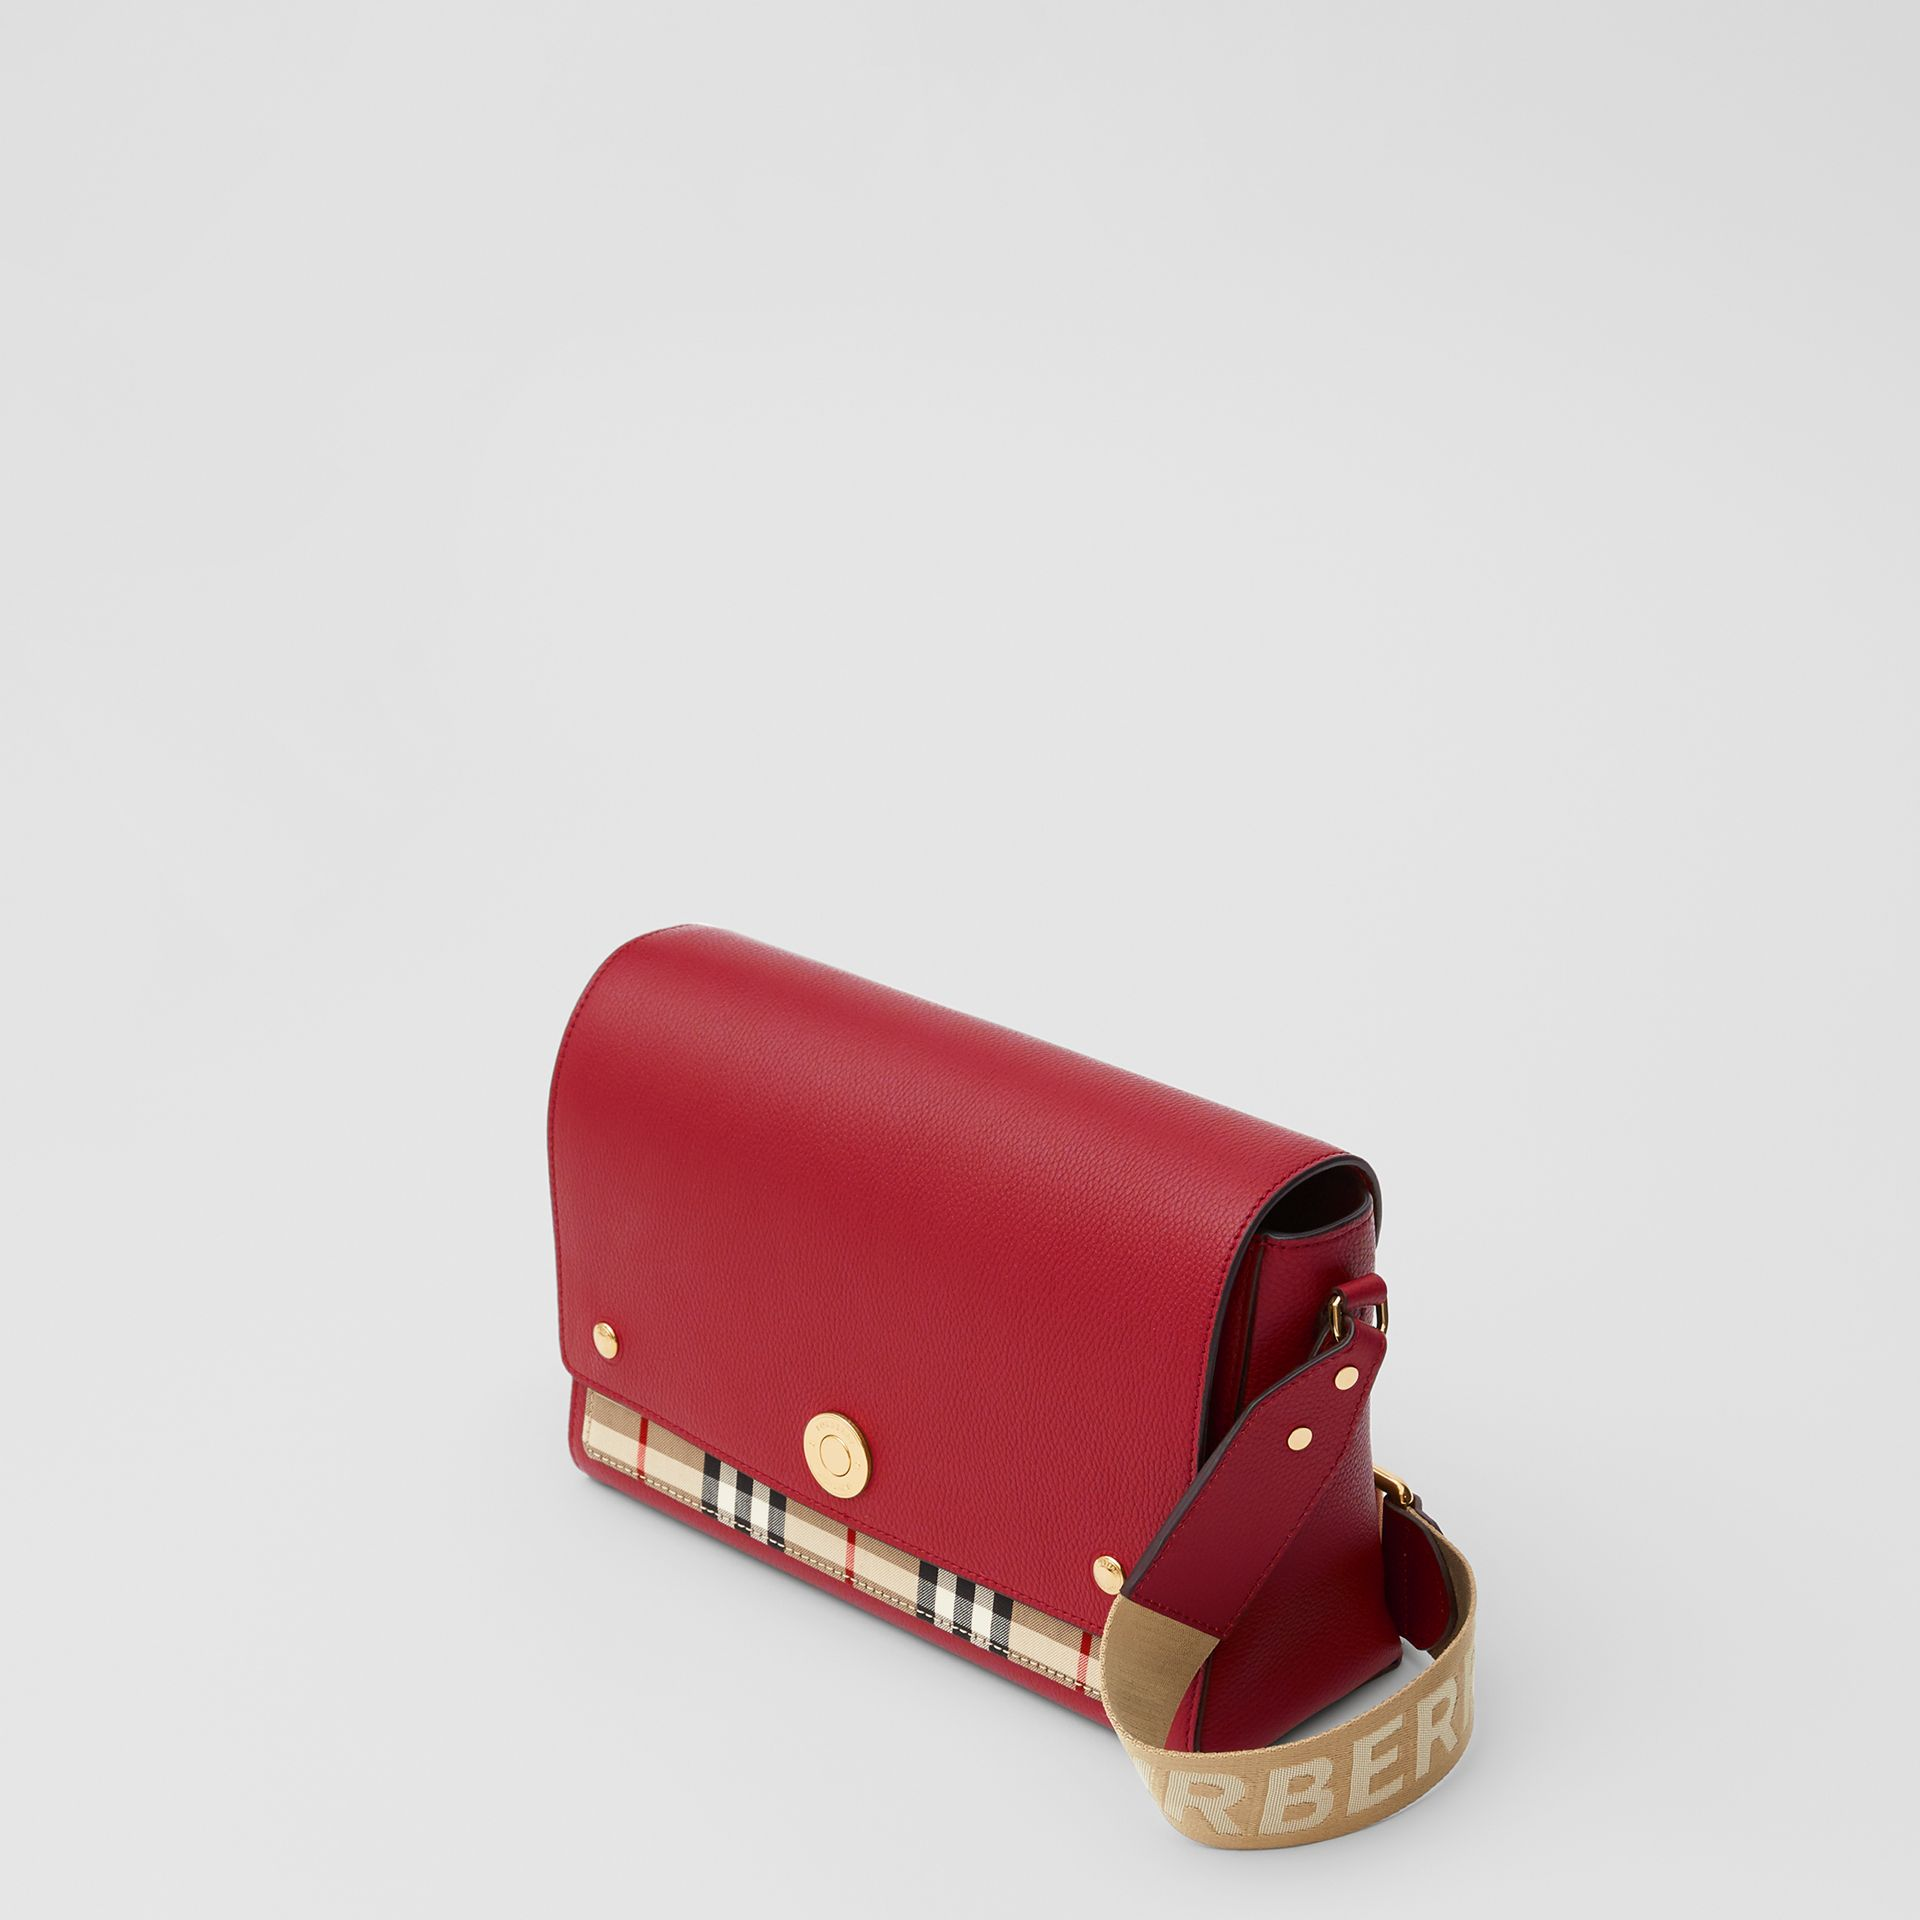 Leather and Vintage Check Note Crossbody Bag in Dark Carmine - Women | Burberry United States - gallery image 3